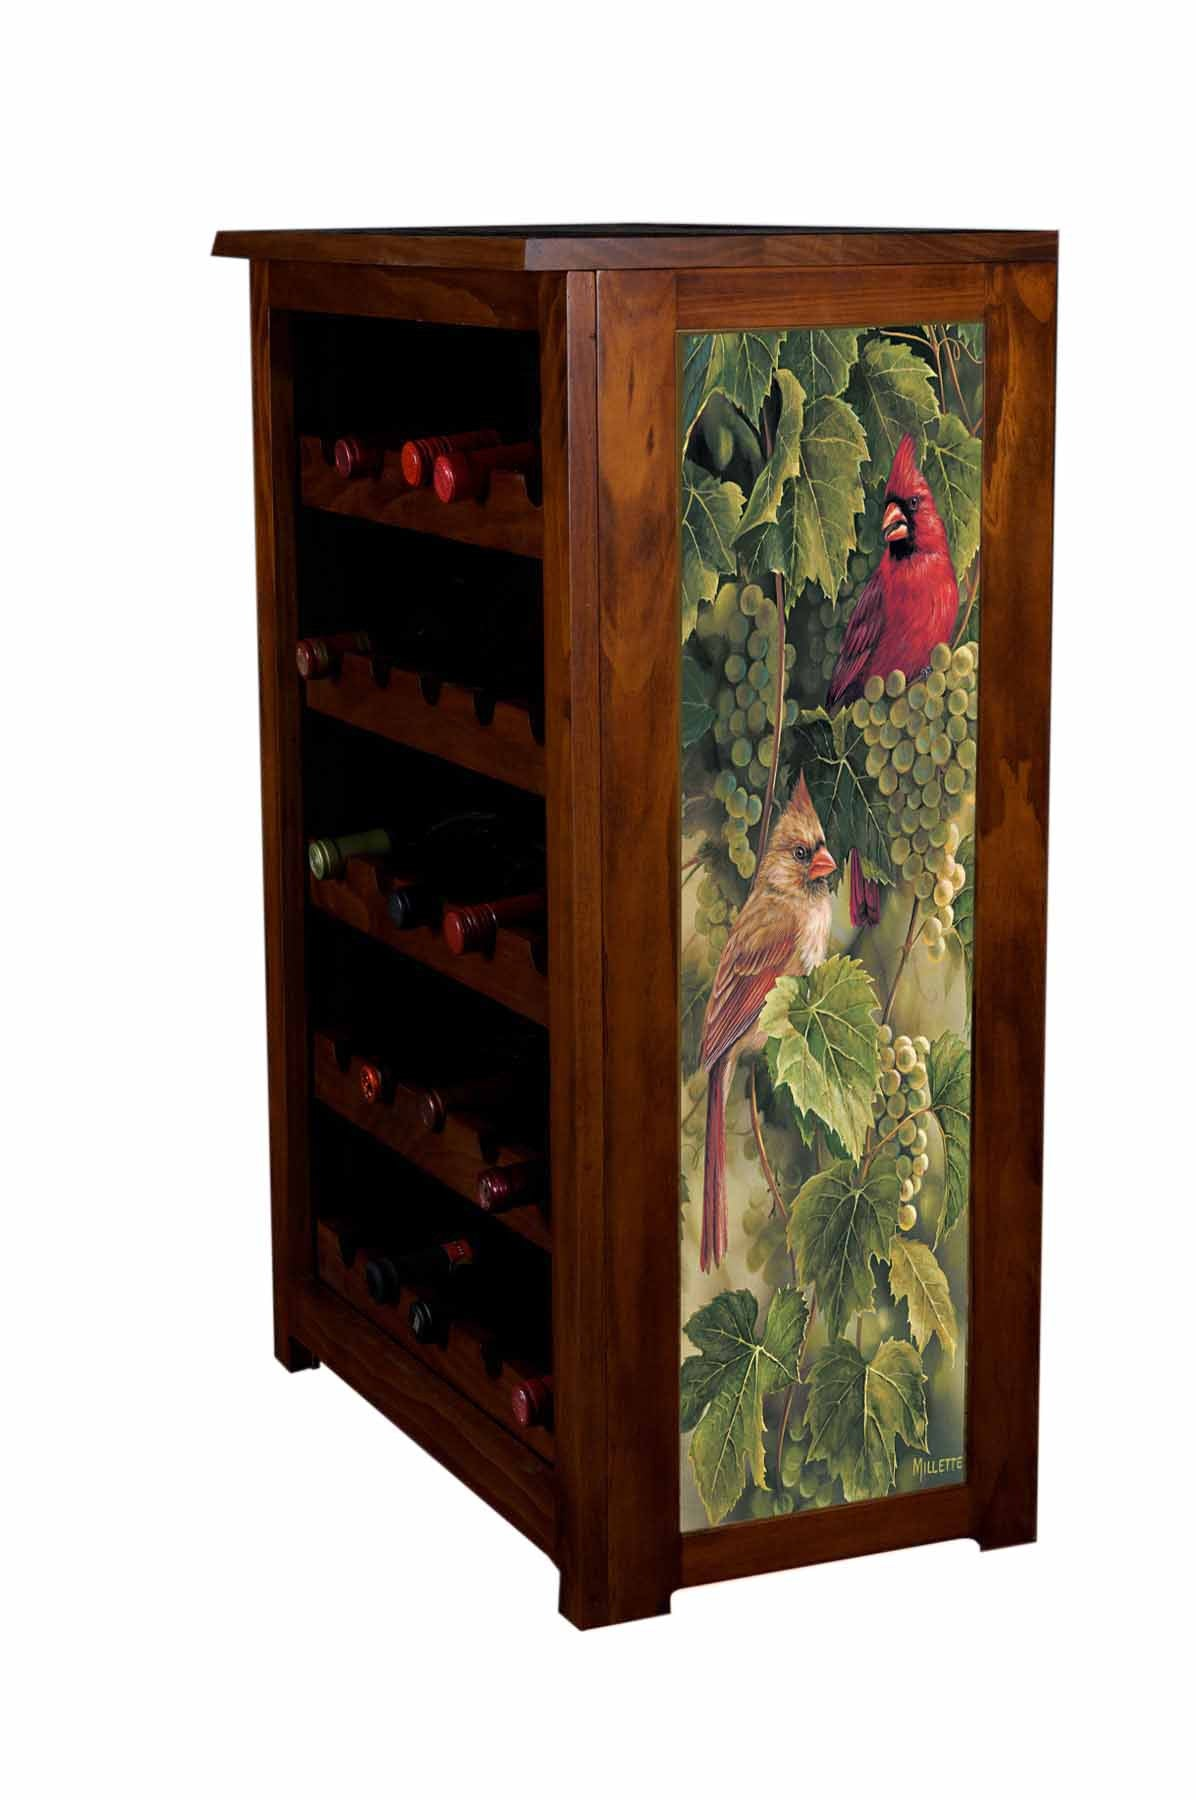 Wine Cabinet,Vineyard Cardinals,Rosemary Millette